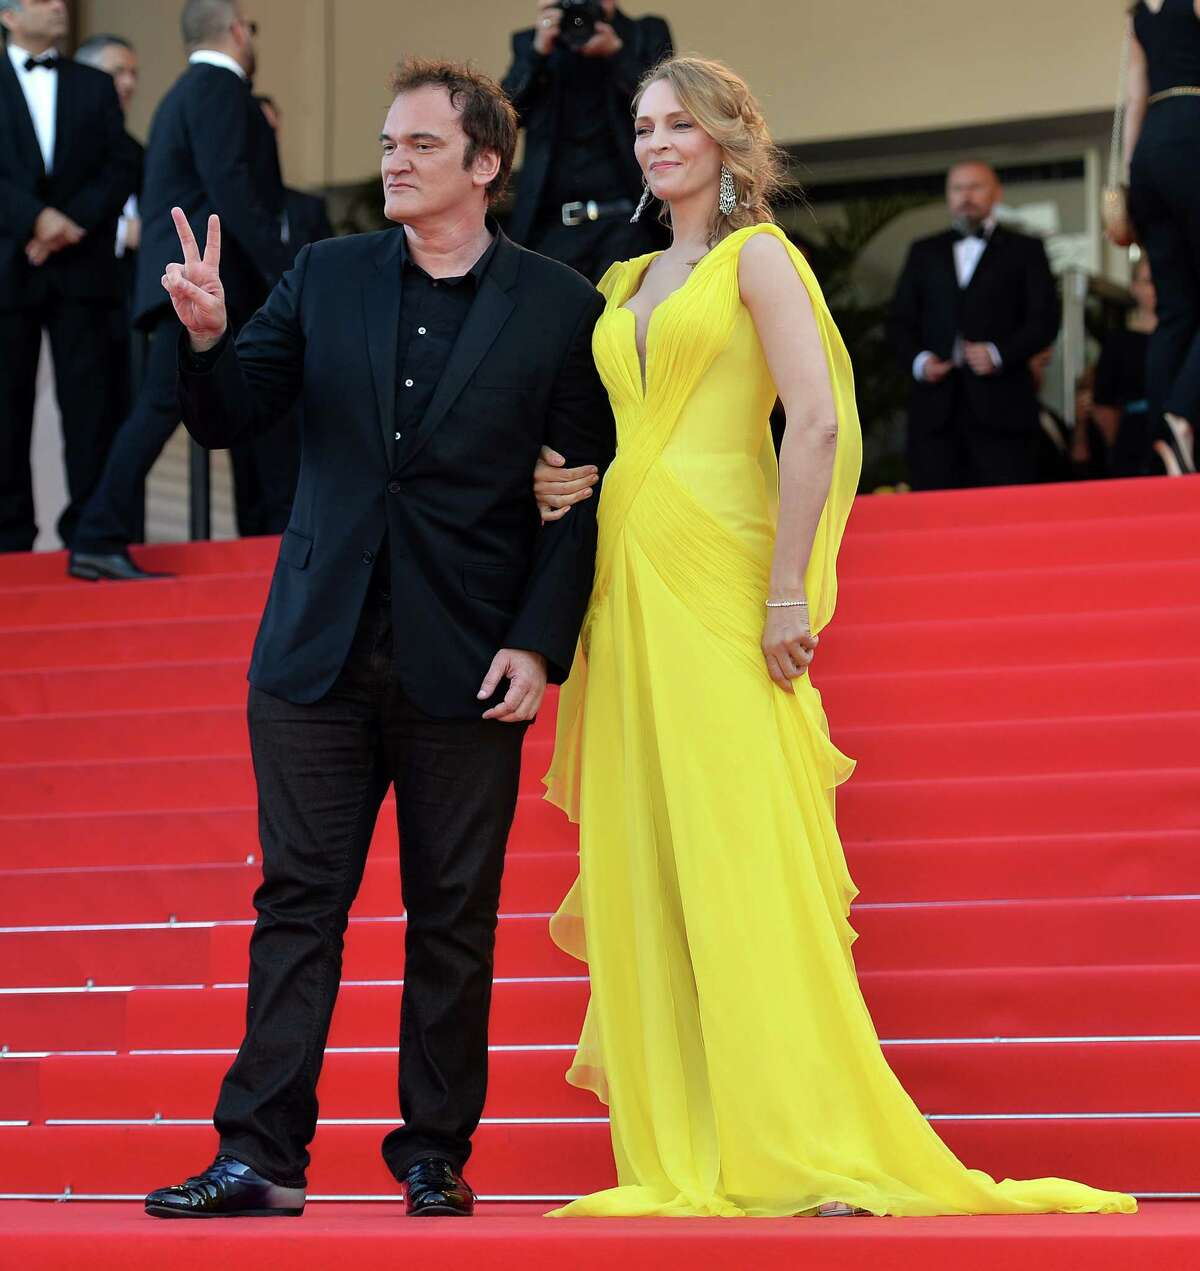 """Director Quentin Tarantino (L) and actress Uma Thurman (R) attend """"Sils Maria"""" (Clouds of Sils Maria) film screening in competition during the 67th Cannes Film Festival in Cannes, France. May 23, 2014. (Photo by Mustafa Yalcin/Anadolu Agency/Getty Images)Related stories: Turkish drama 'Winter Sleep' wins Palme d'Or PHOTO GALLERY: Cannes' fashion highs"""